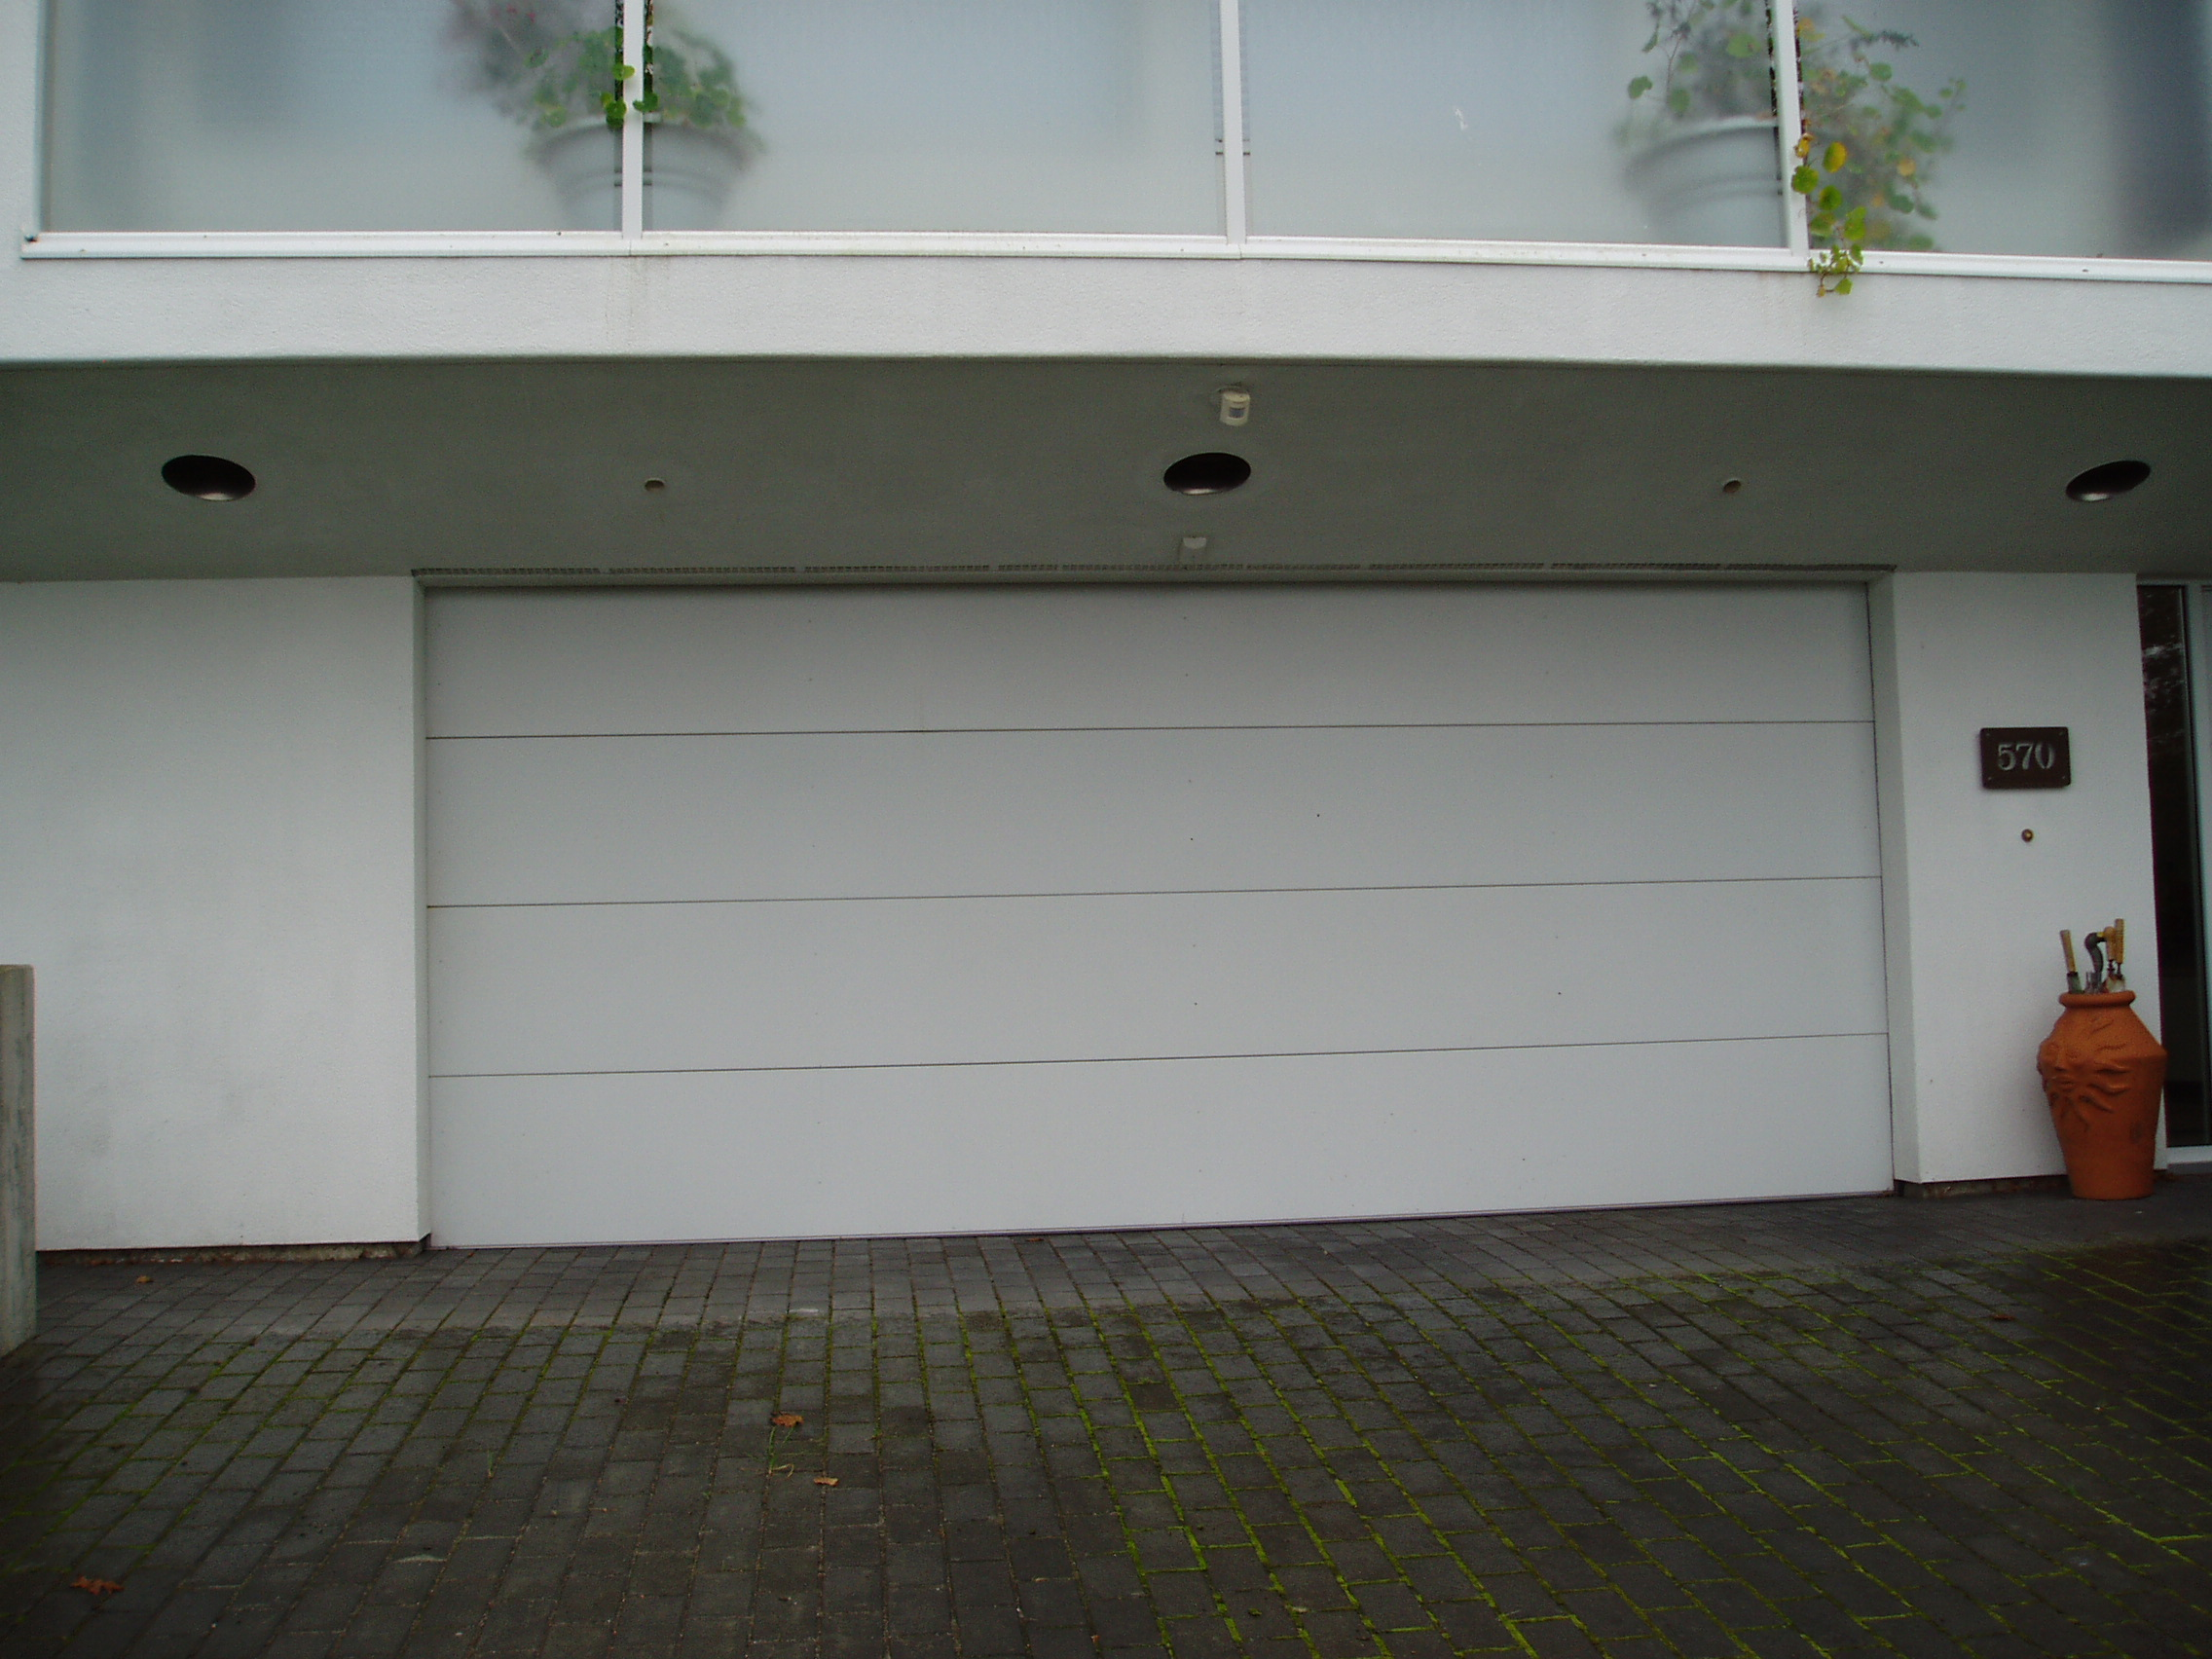 1704 #633C28 PC03 Clopay Premium Series Flush Style Solid/No Glass wallpaper Clopay Steel Garage Doors 37752272